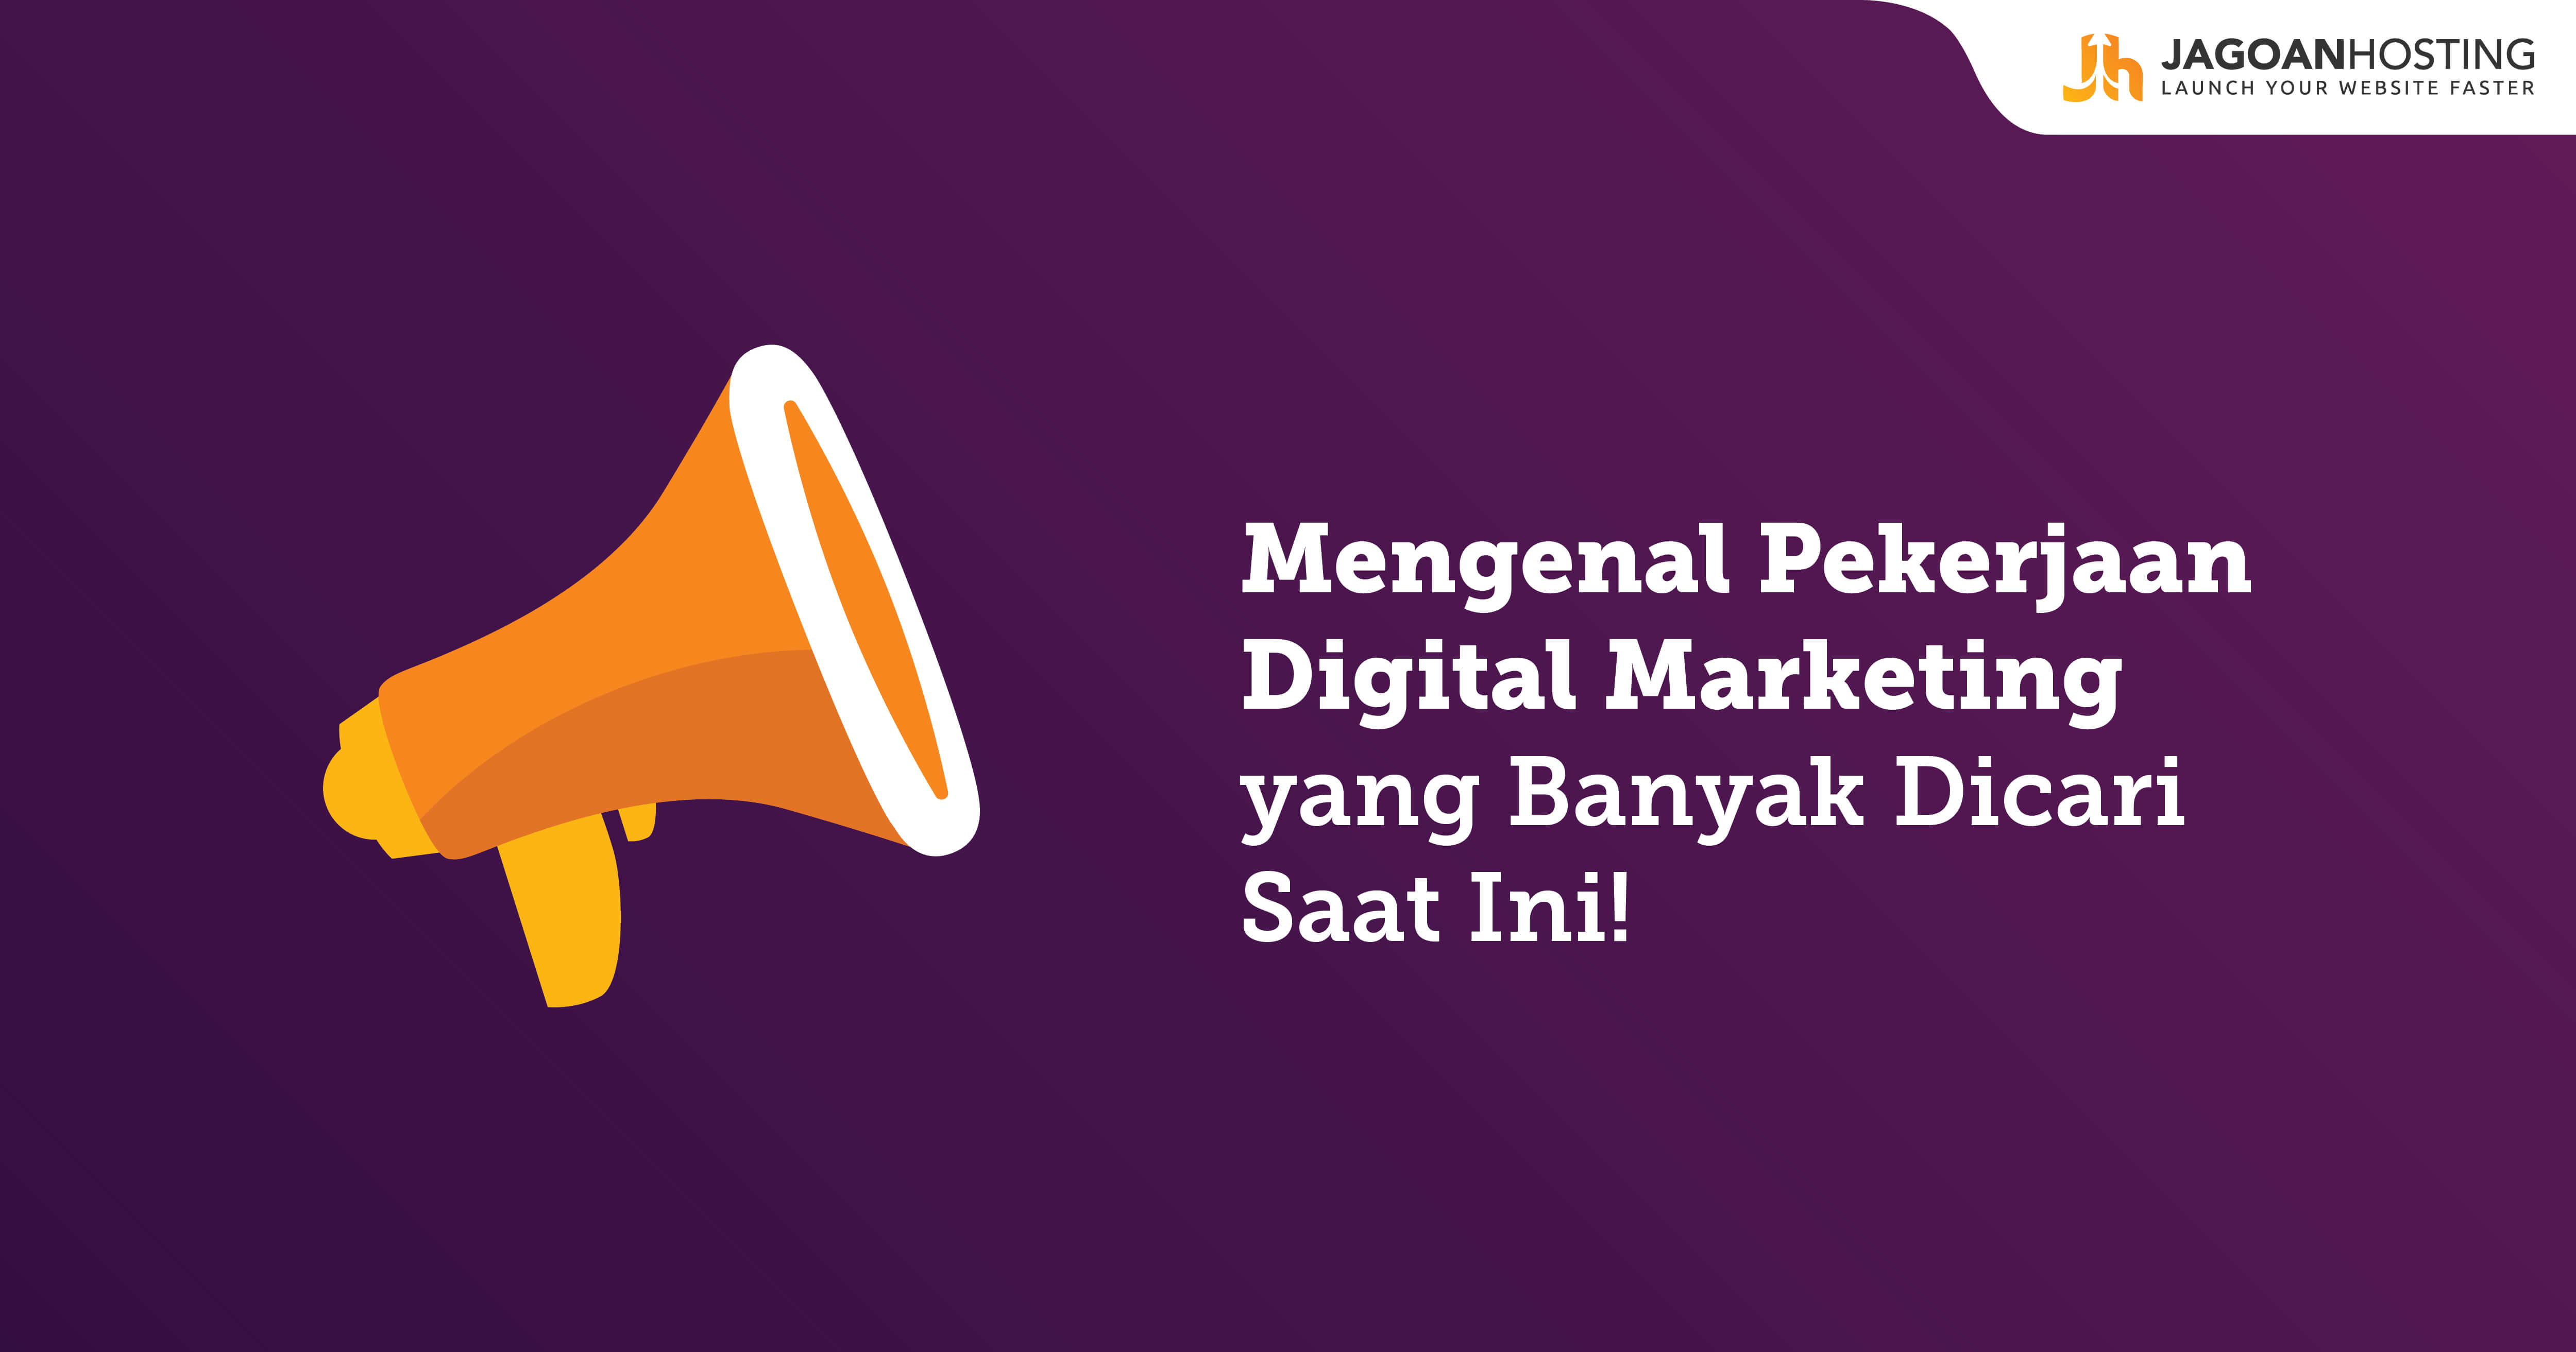 pekerjaan digital marketing